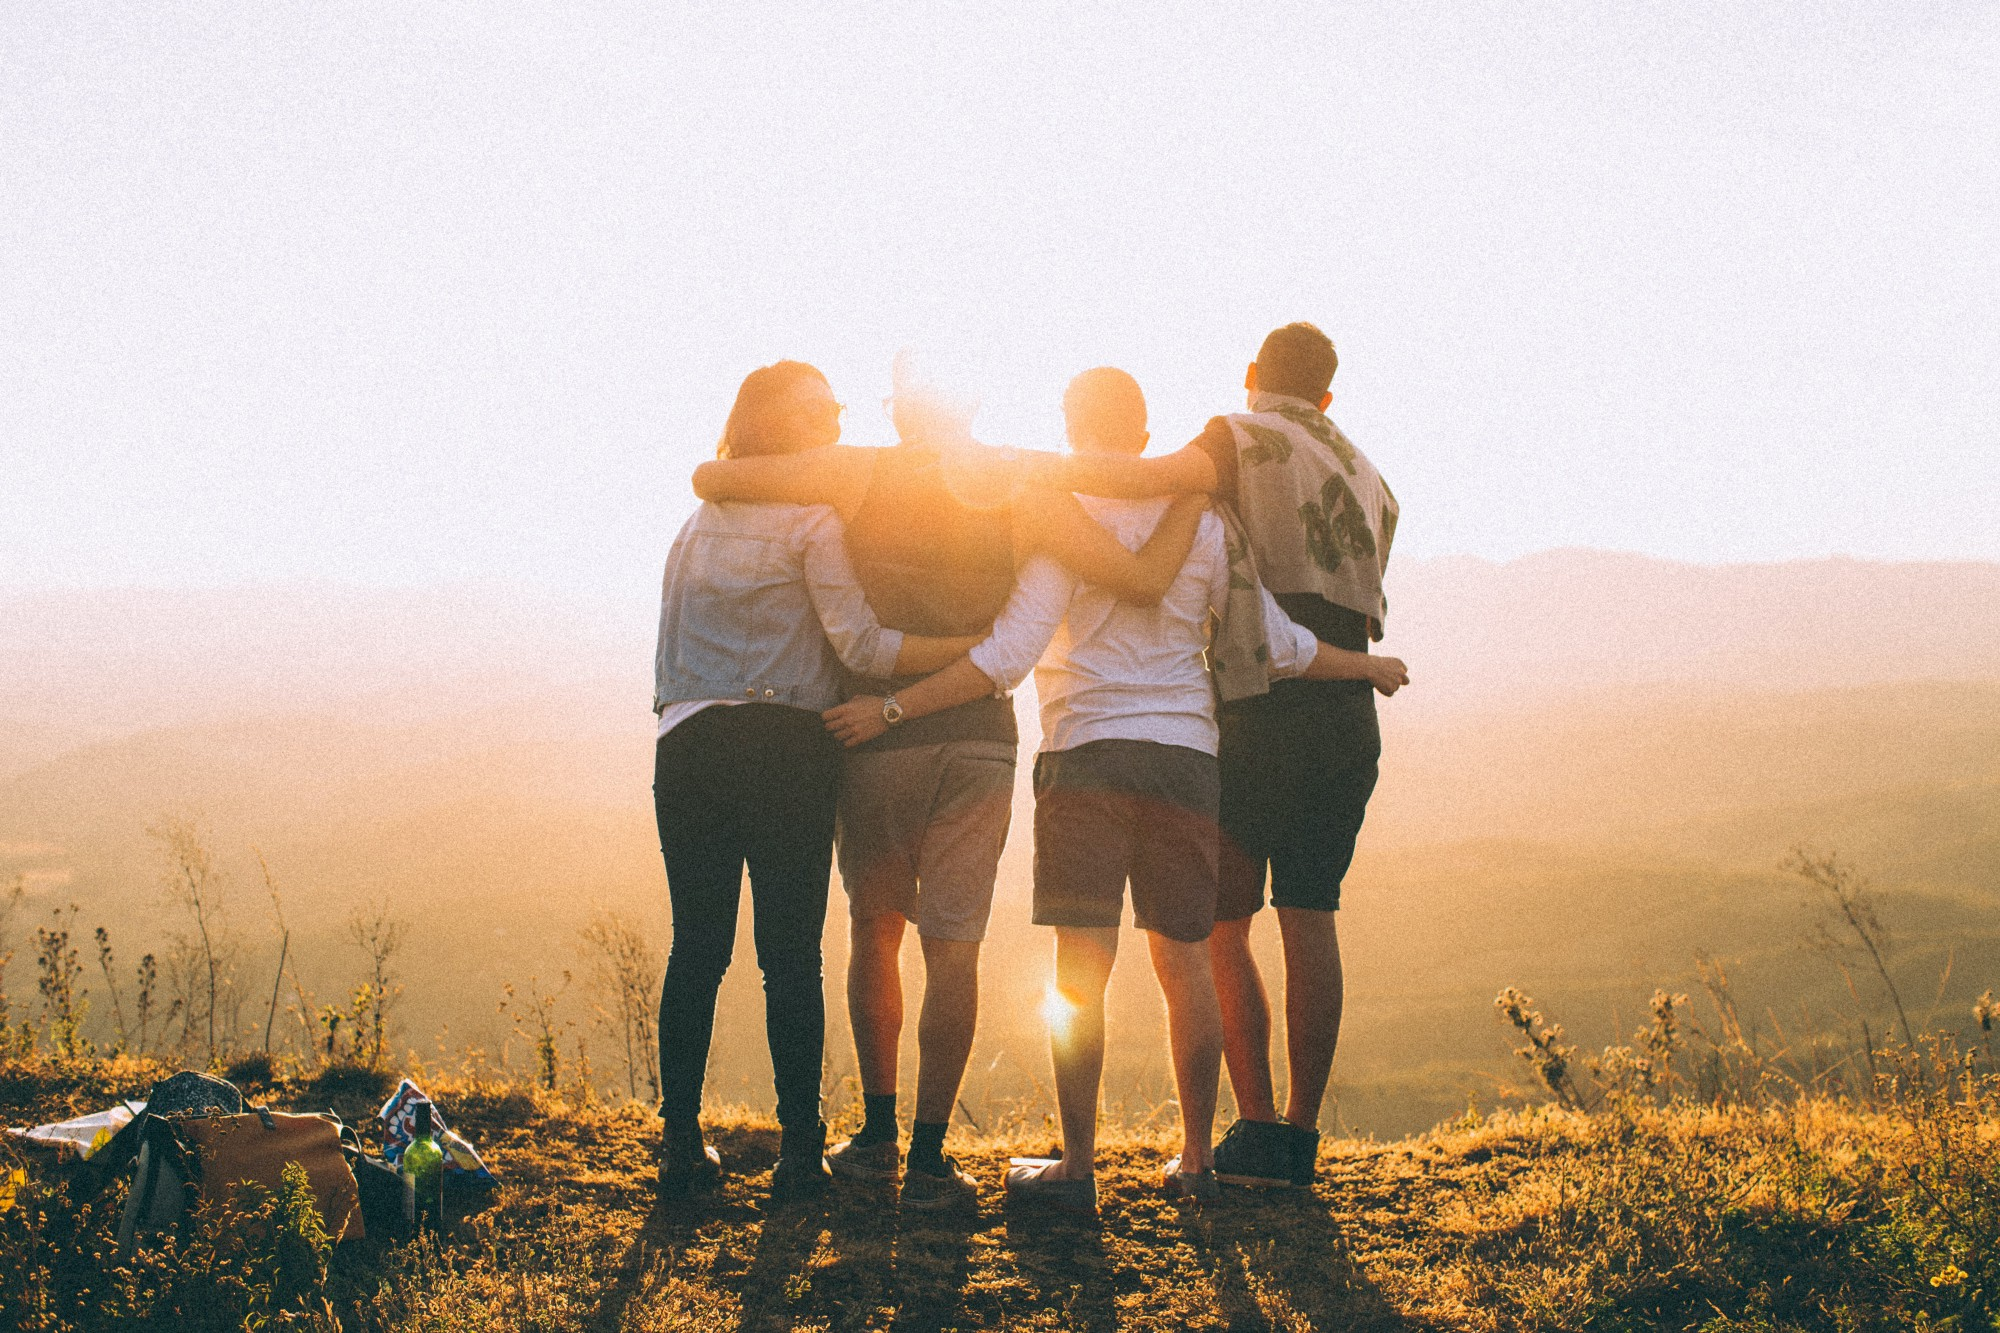 Group of friends hugging in the sunset light